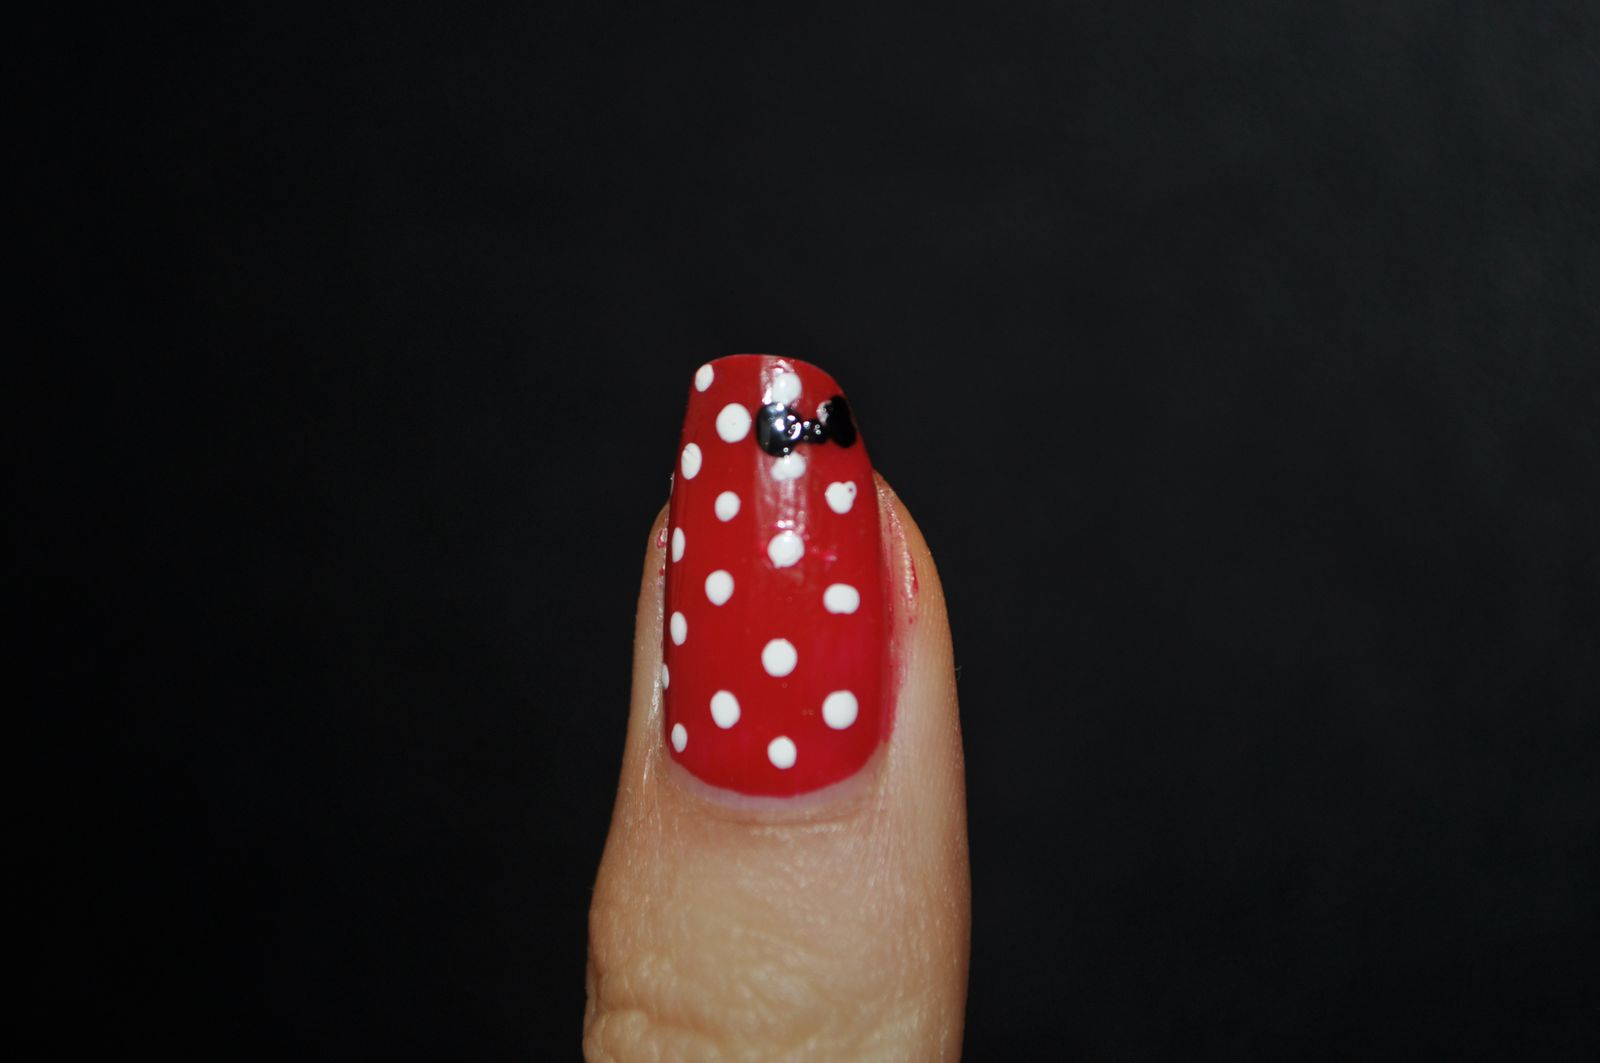 [Nailstorming] Disney nails